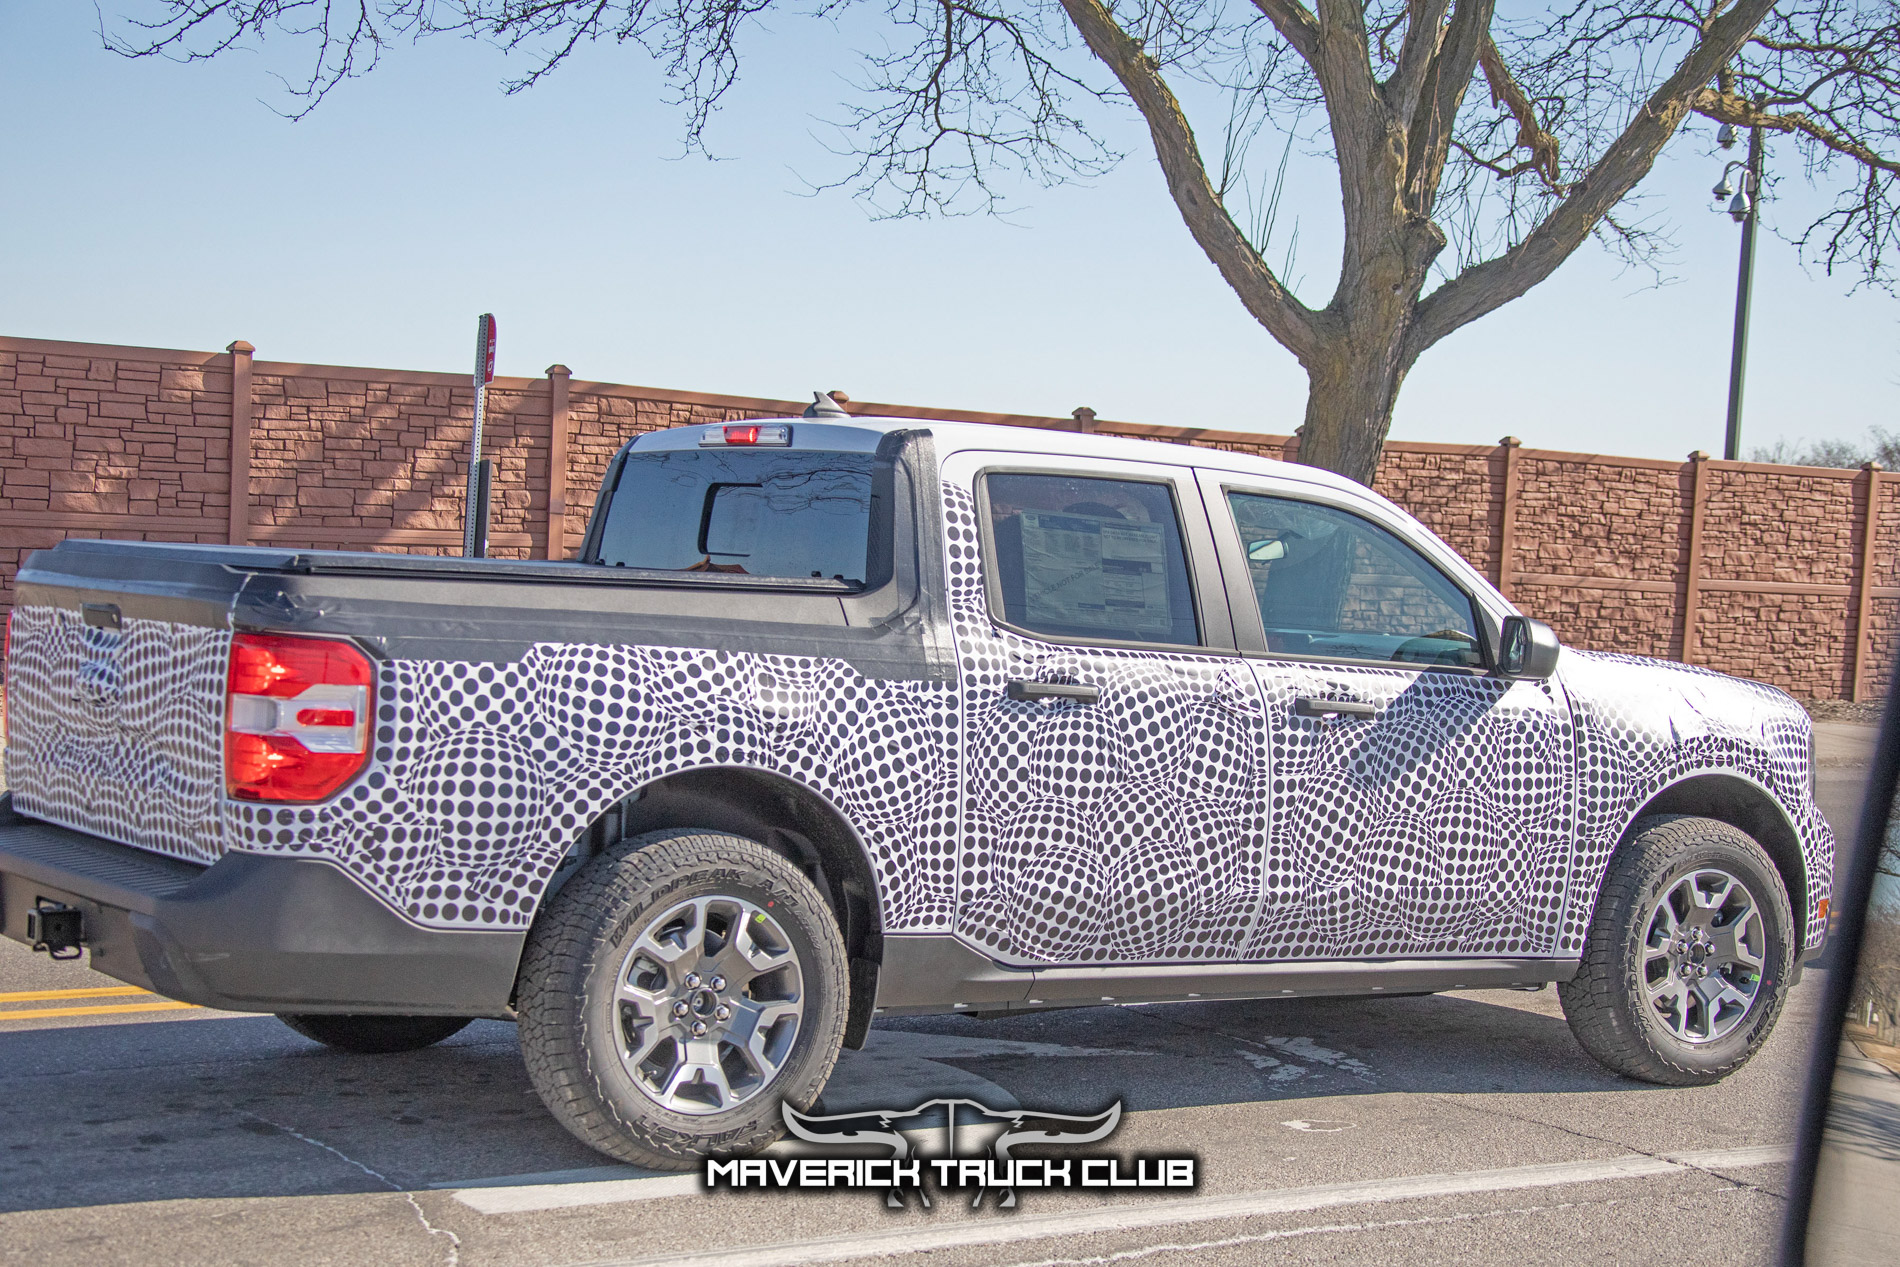 2022 Ford Maverick Pickup Spied 20.jpg